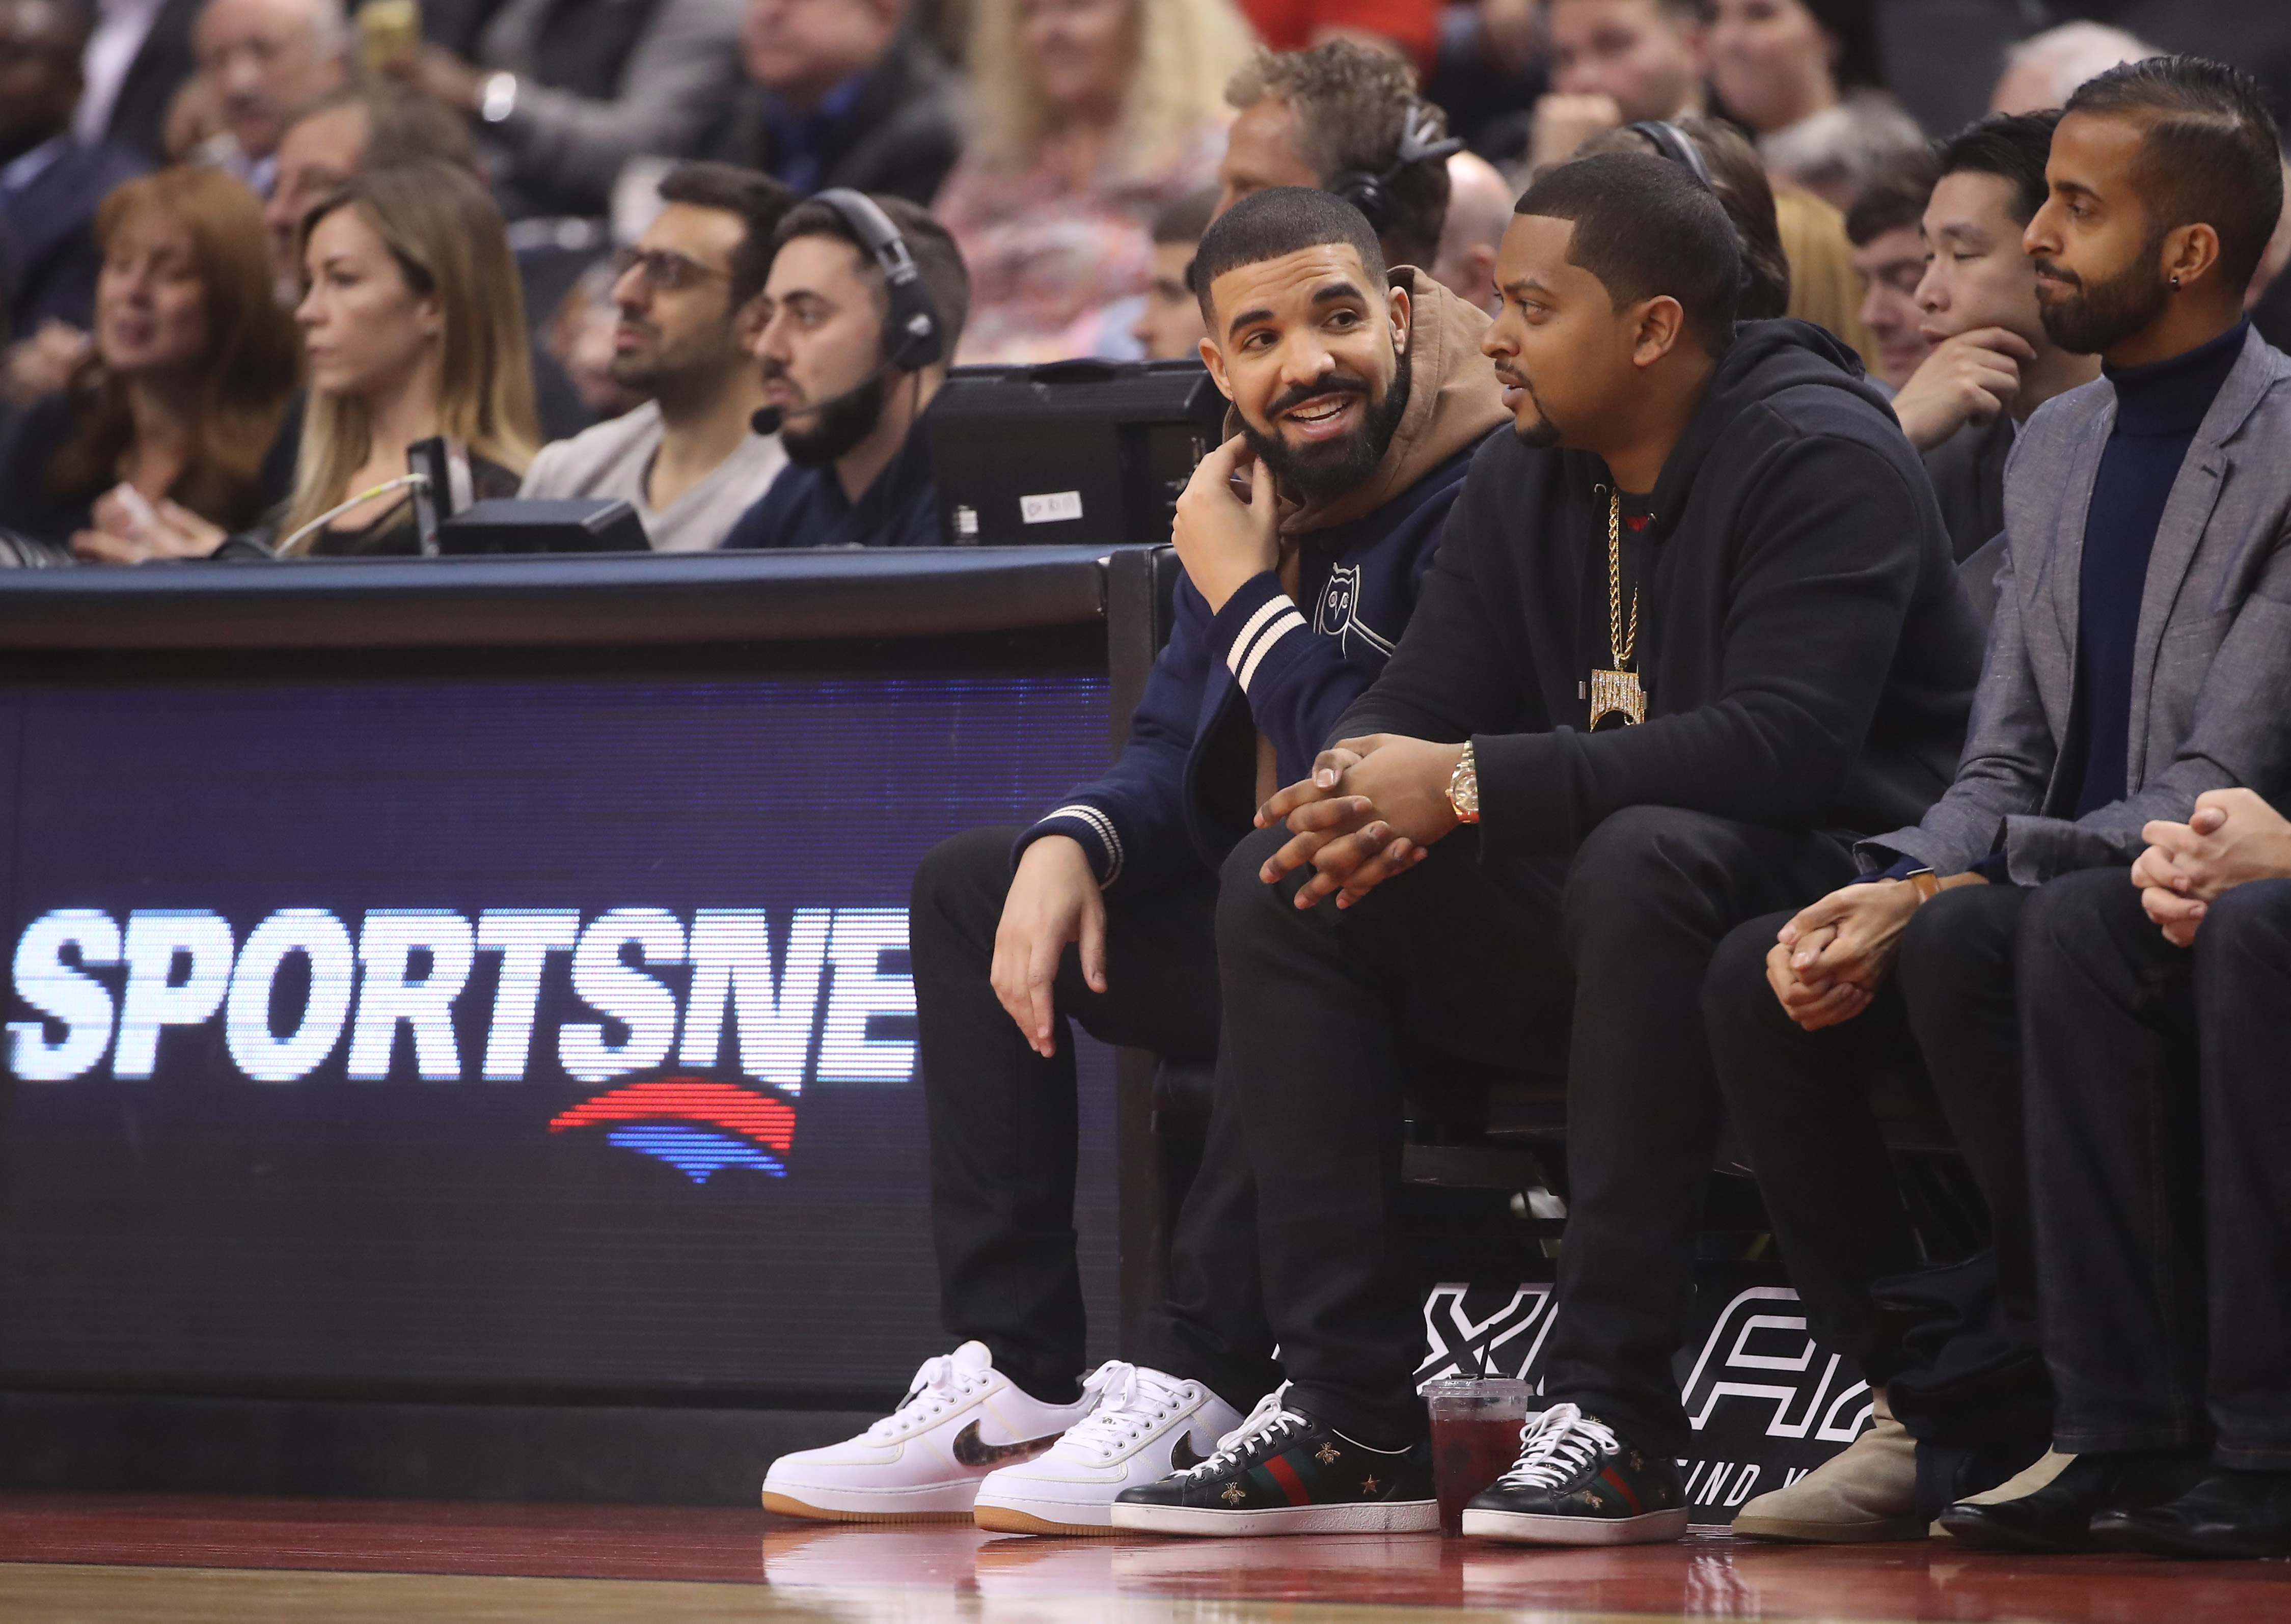 TORONTO, ON - NOVEMBER 29: Rap artist and team ambassador Drake of the Toronto Raptors watches from his courtside seat against the Charlotte Hornets during NBA game action at Air Canada Centre on November 29, 2017 in Toronto, Canada. NOTE TO USER: User expressly acknowledges and agrees that, by downloading and or using this photograph, User is consenting to the terms and conditions of the Getty Images License Agreement. (Photo by Tom Szczerbowski/Getty Images)